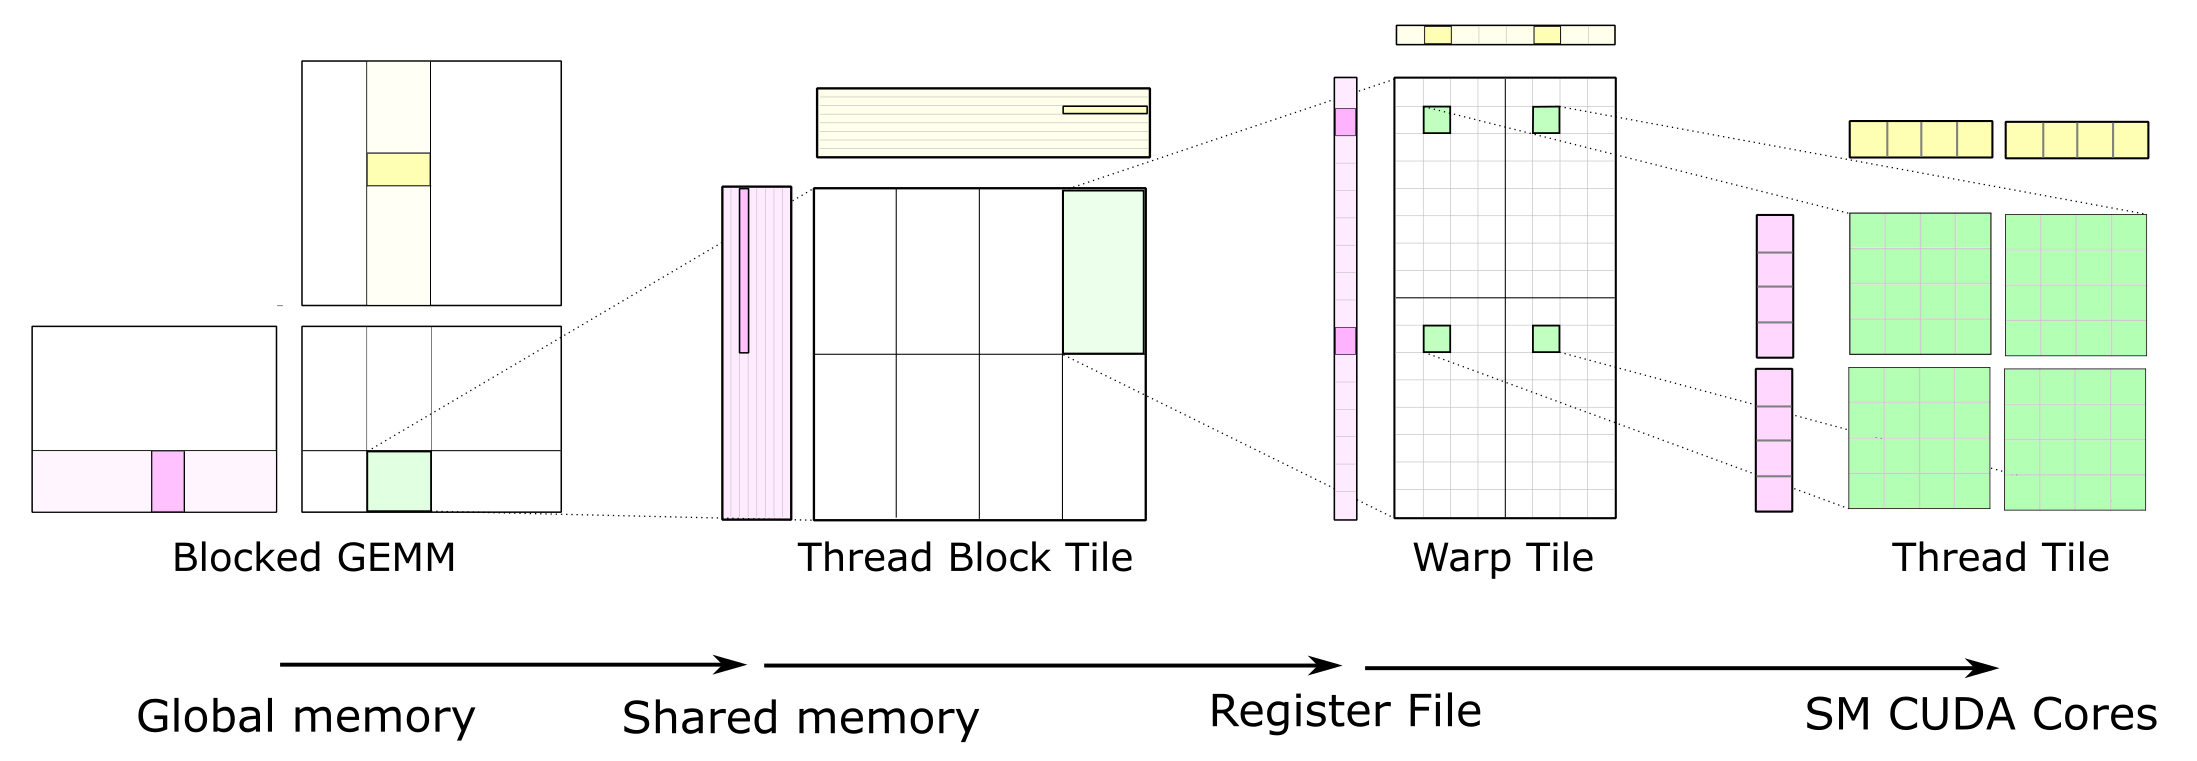 Figure 1. The complete GEMM hierarchy transfers data from slower memory to faster memory where it is reused in many math operations.